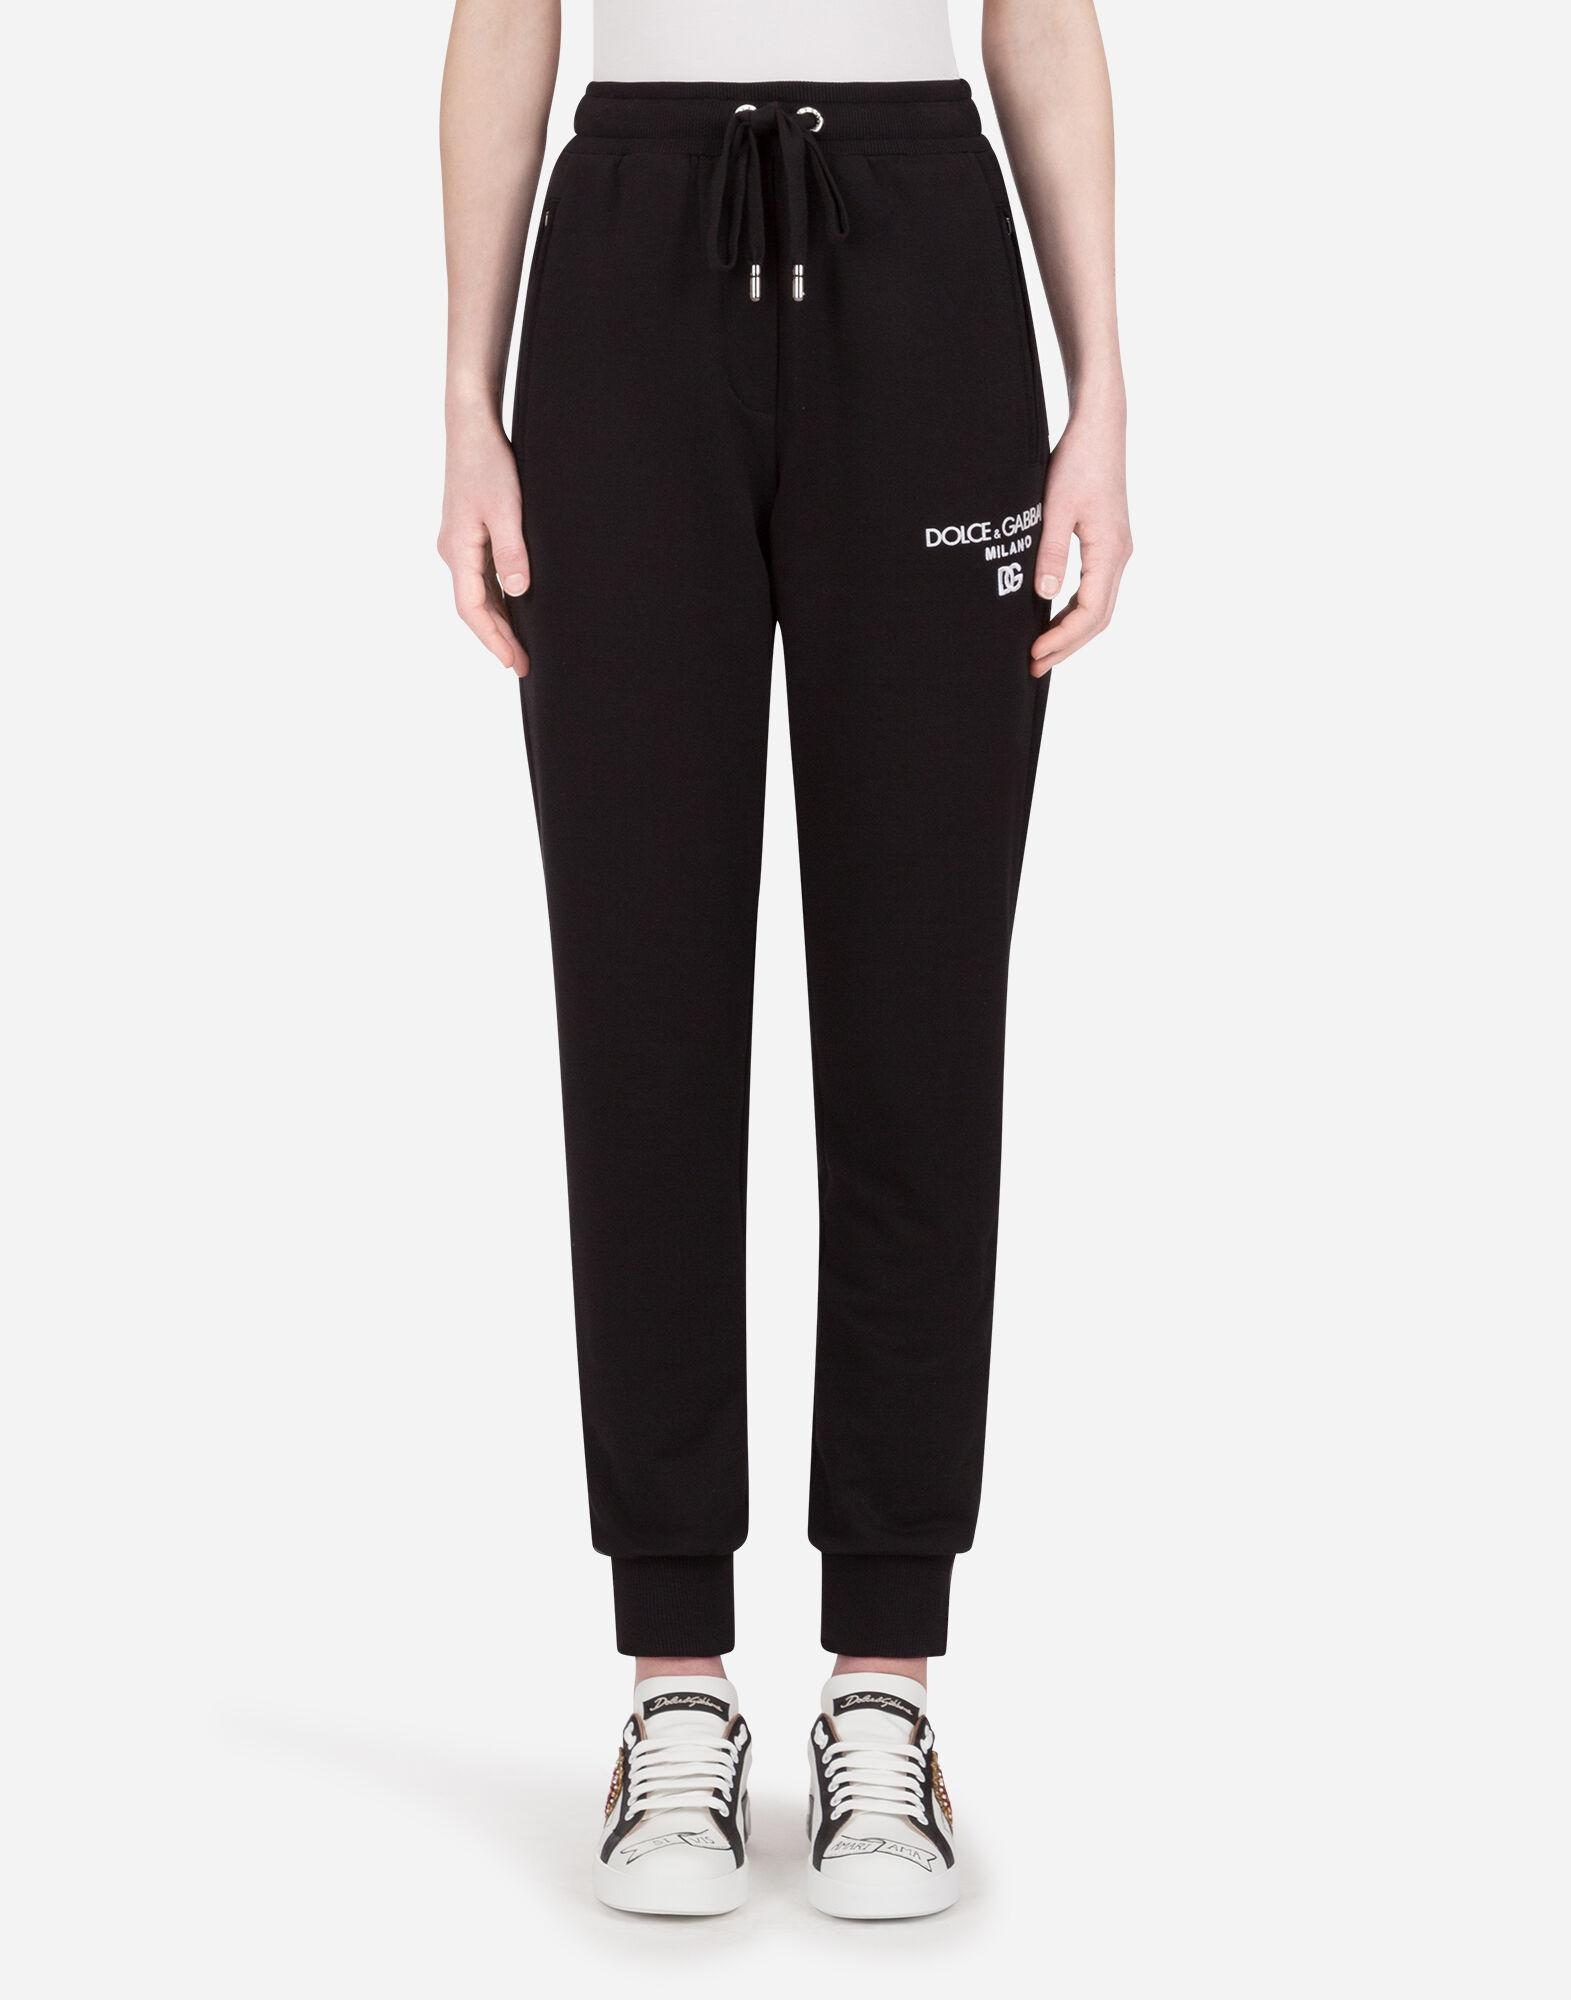 Printed jersey jogging pants with embroidery